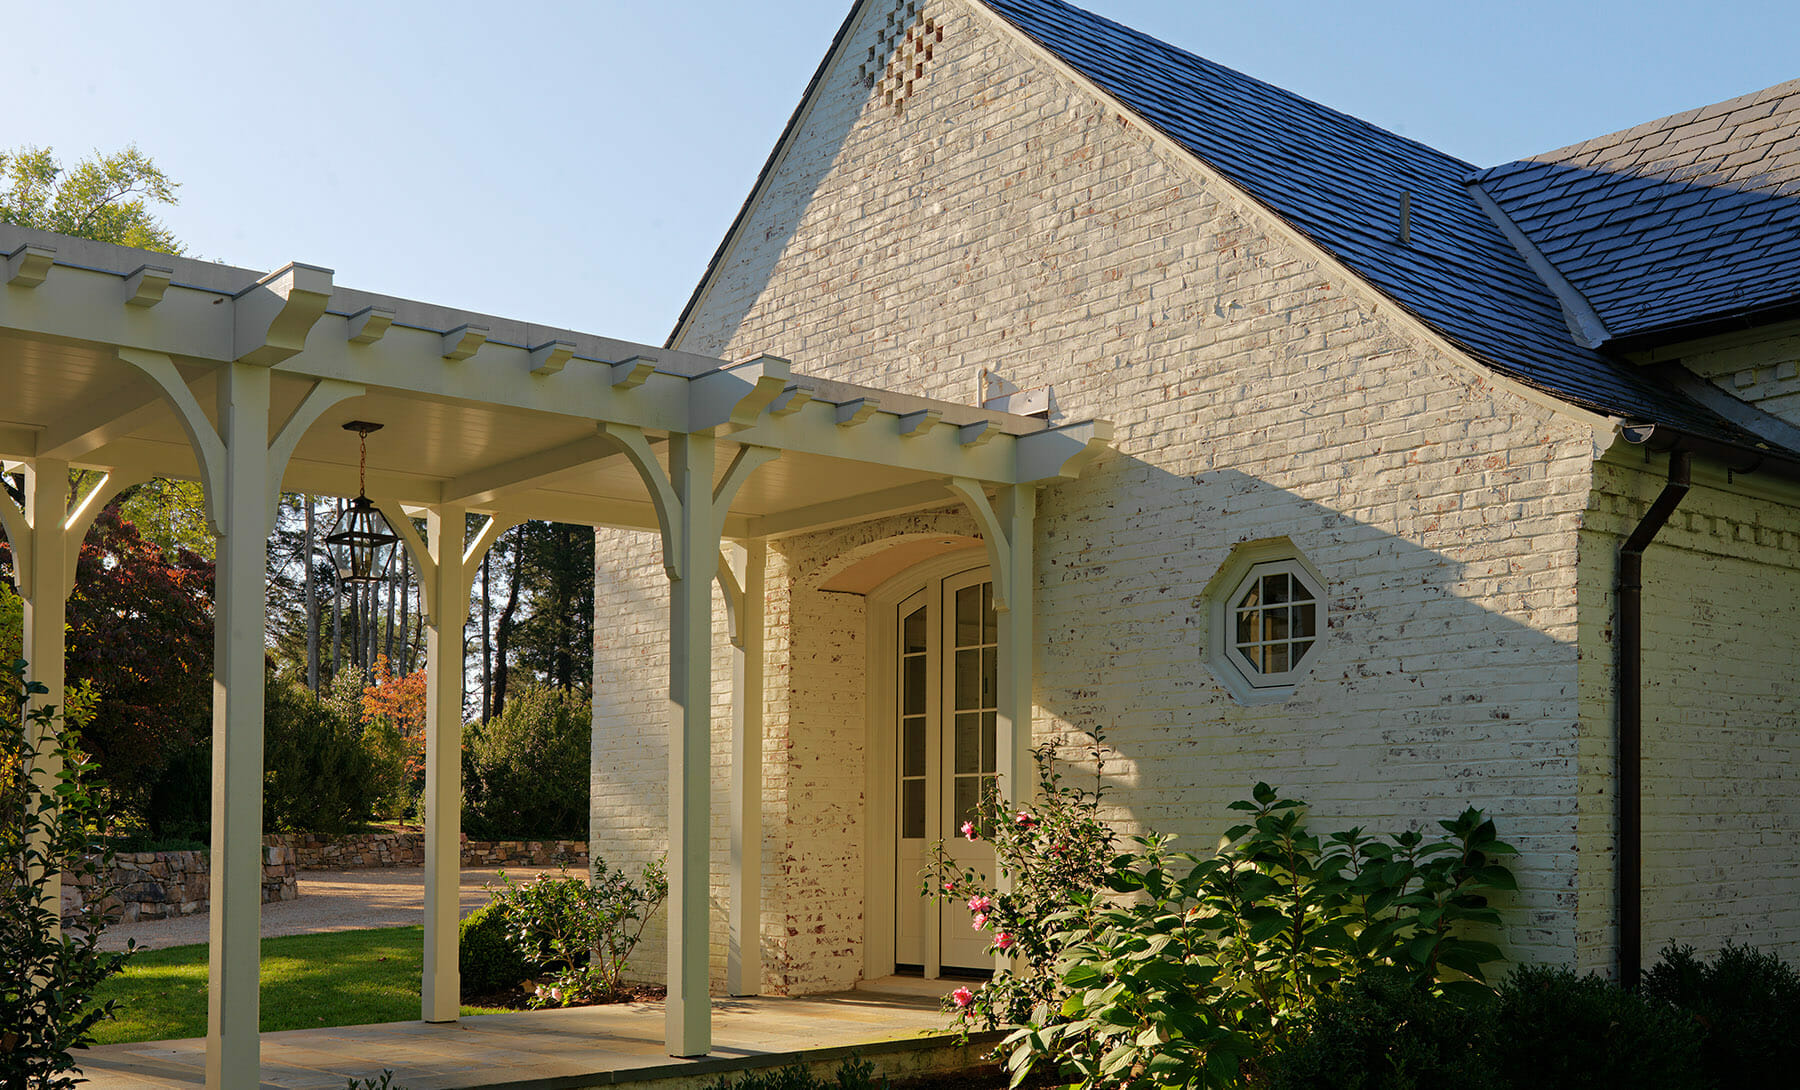 Covered walkway, new home additions in Charlottesville.